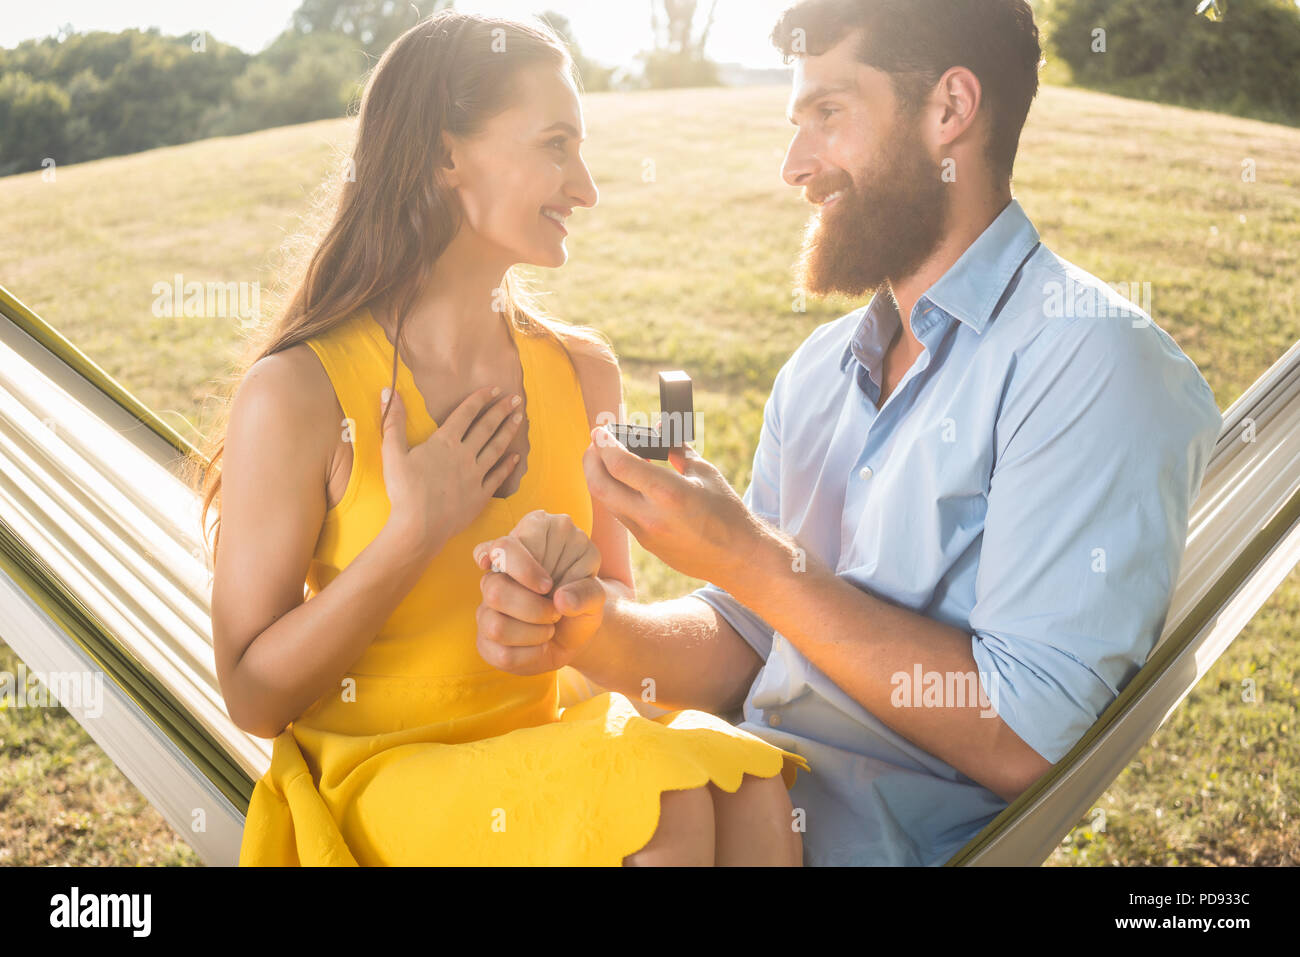 Young man making marriage proposal to beautiful girlfriend outdoors - Stock Image